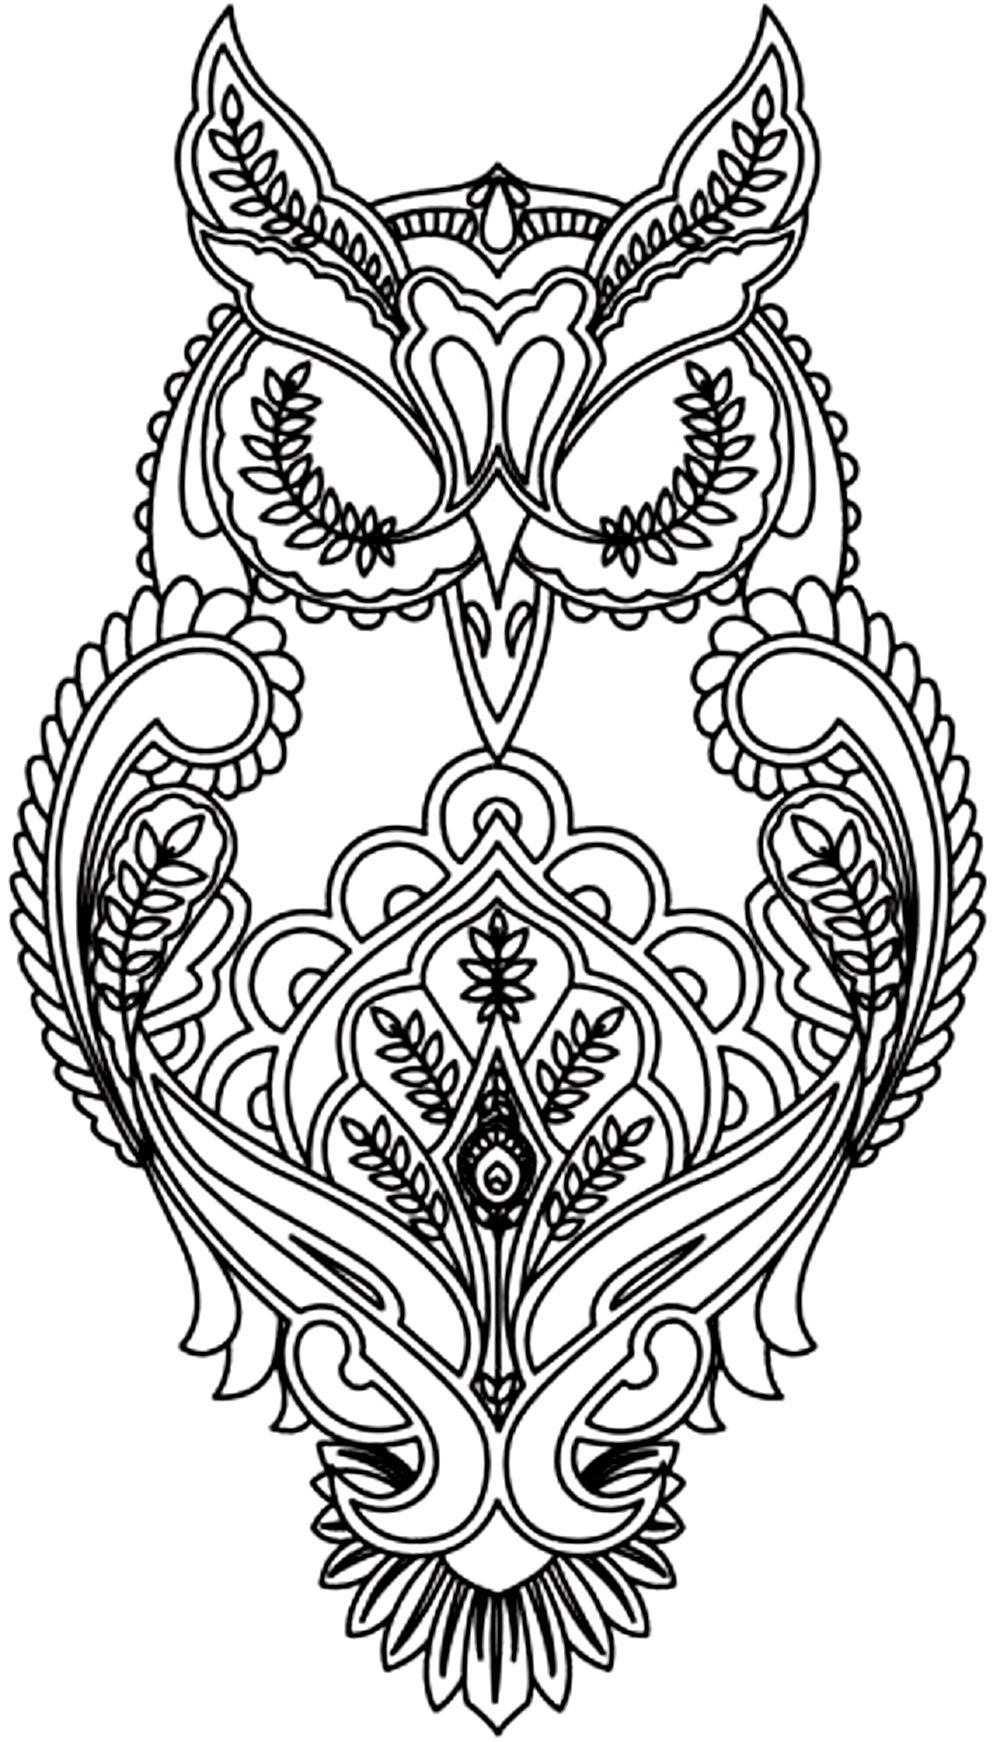 Galerie De Coloriages Gratuits Coloriage Adulte Difficile Hibou